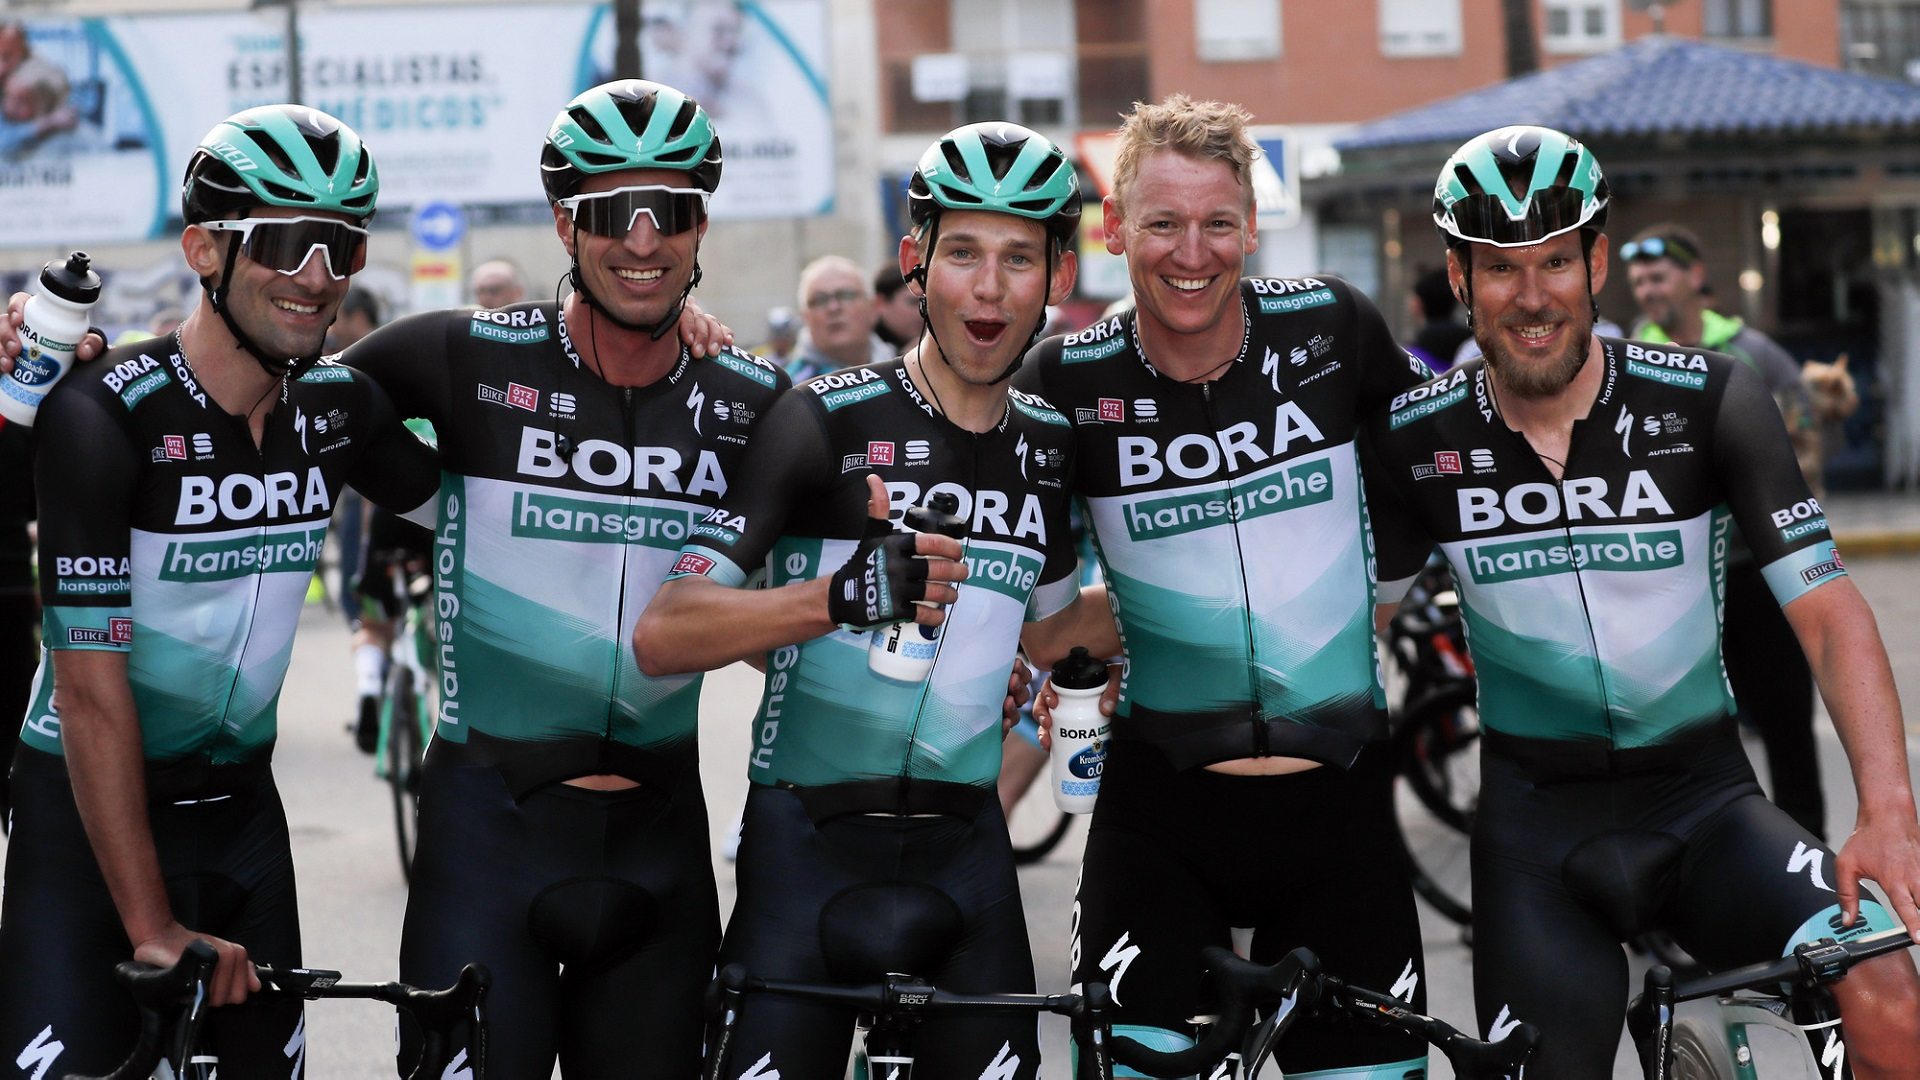 6___bettiniphoto_0439870_BORA-hansgrohe_Team.jpg